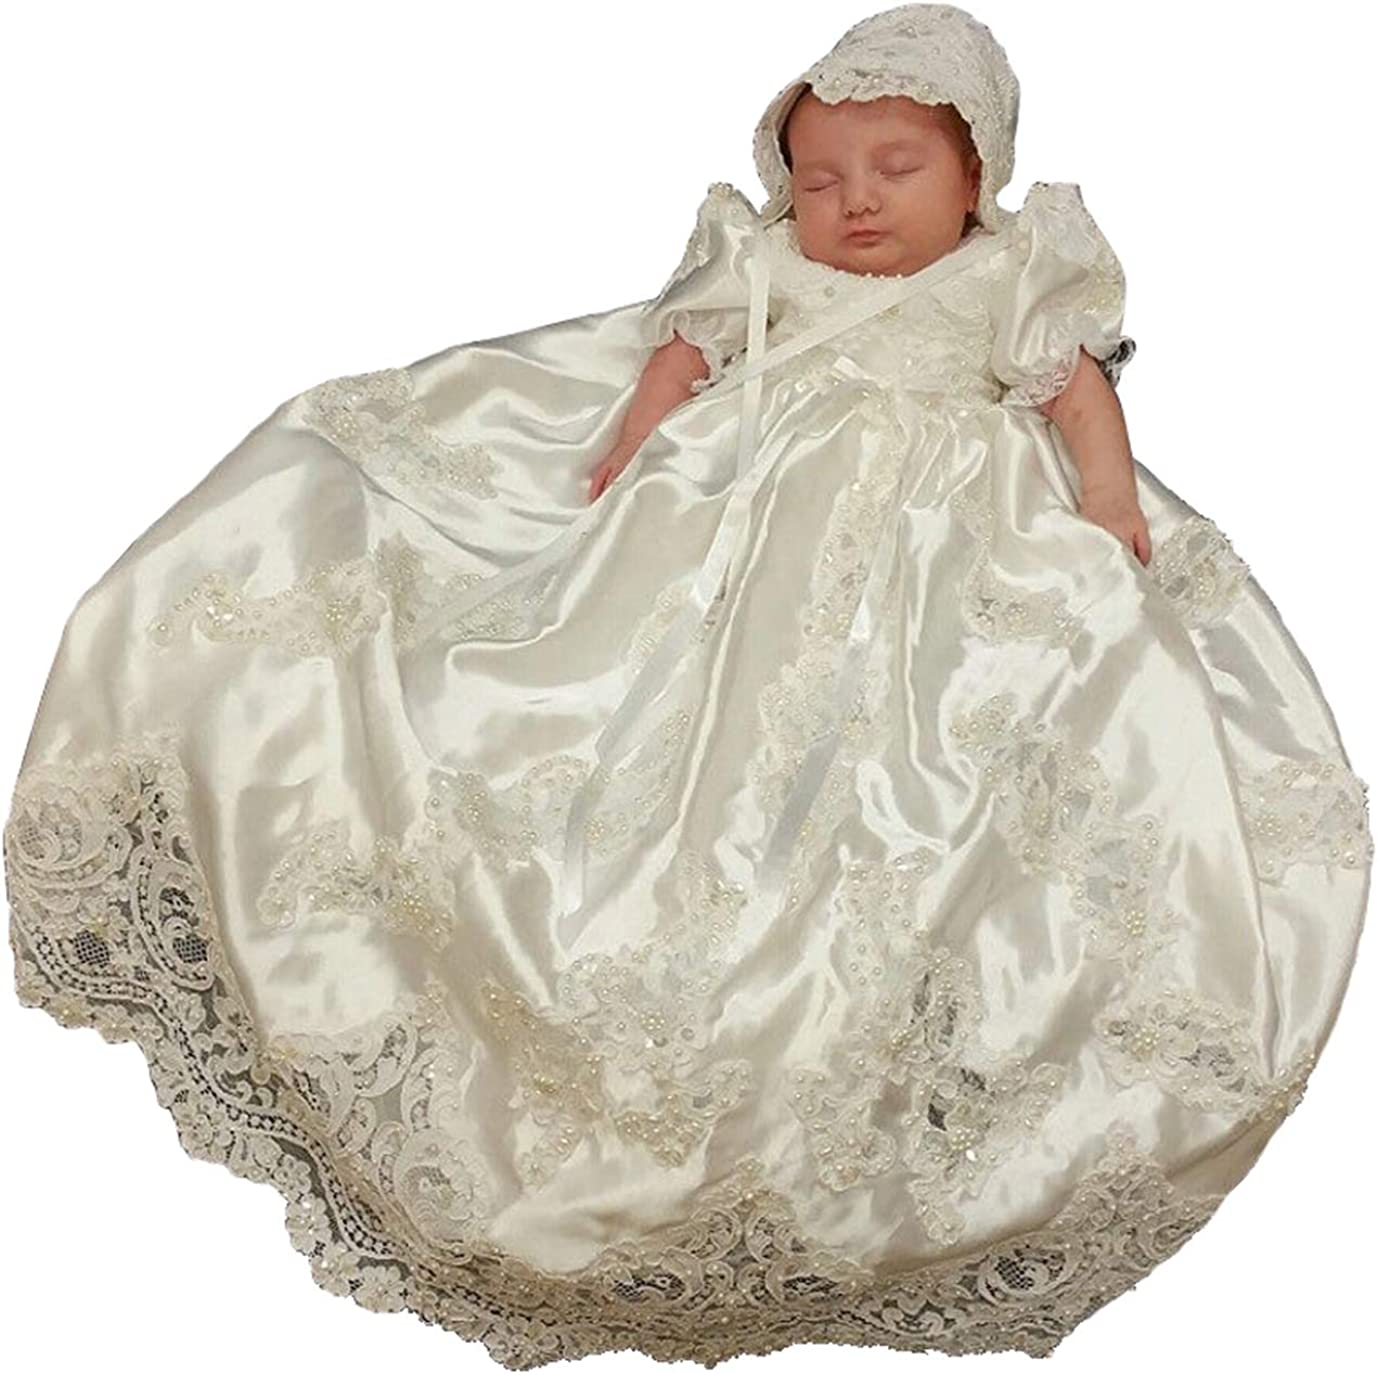 Michealboy Baby Girls Newborn Christening Lace Long Gown Wedding Dress Outfit 0-24M